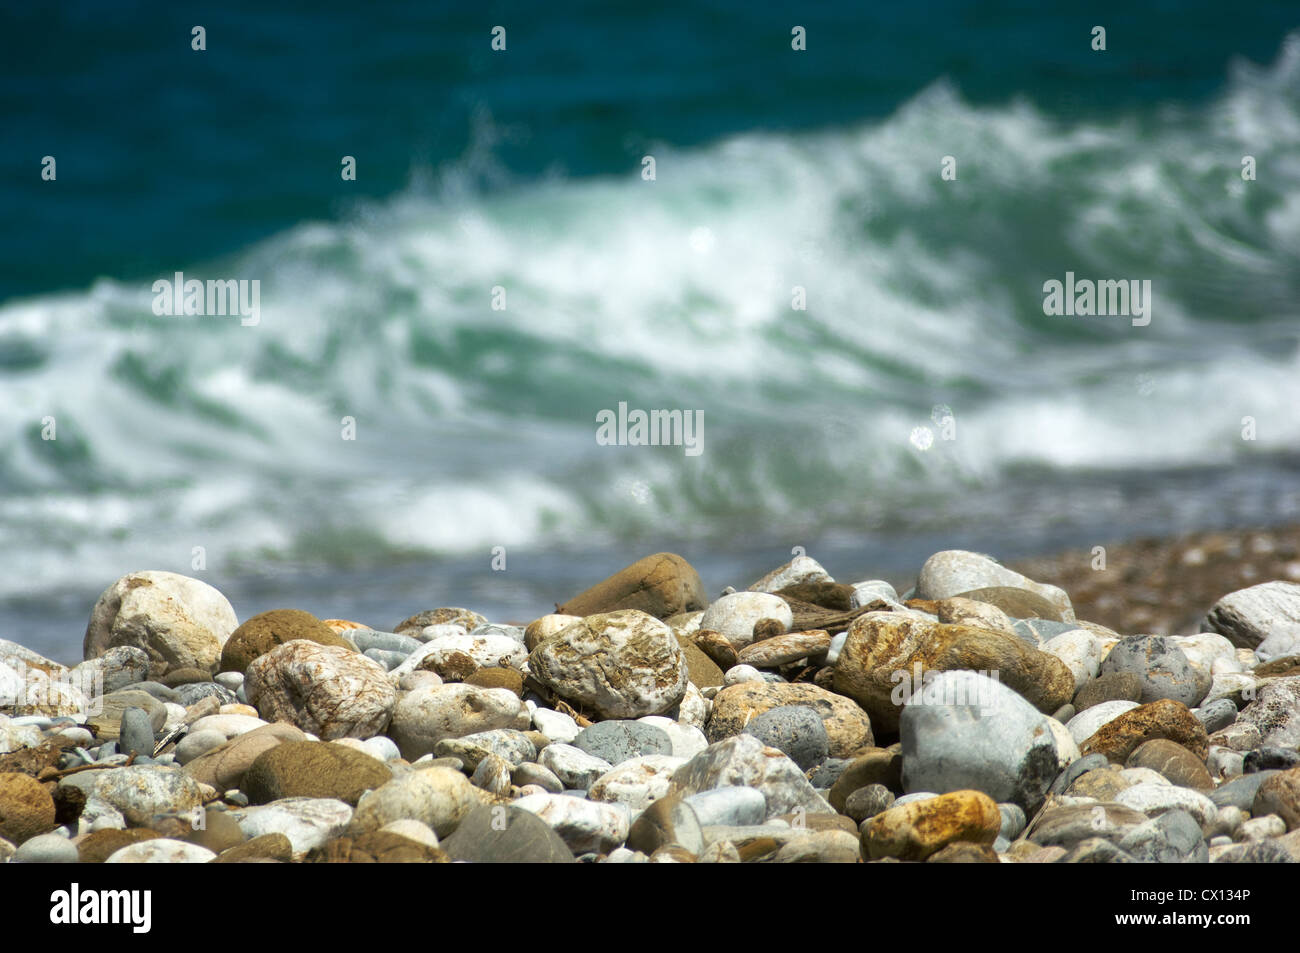 Close-up of a pebble beach with waves in the background - Stock Image